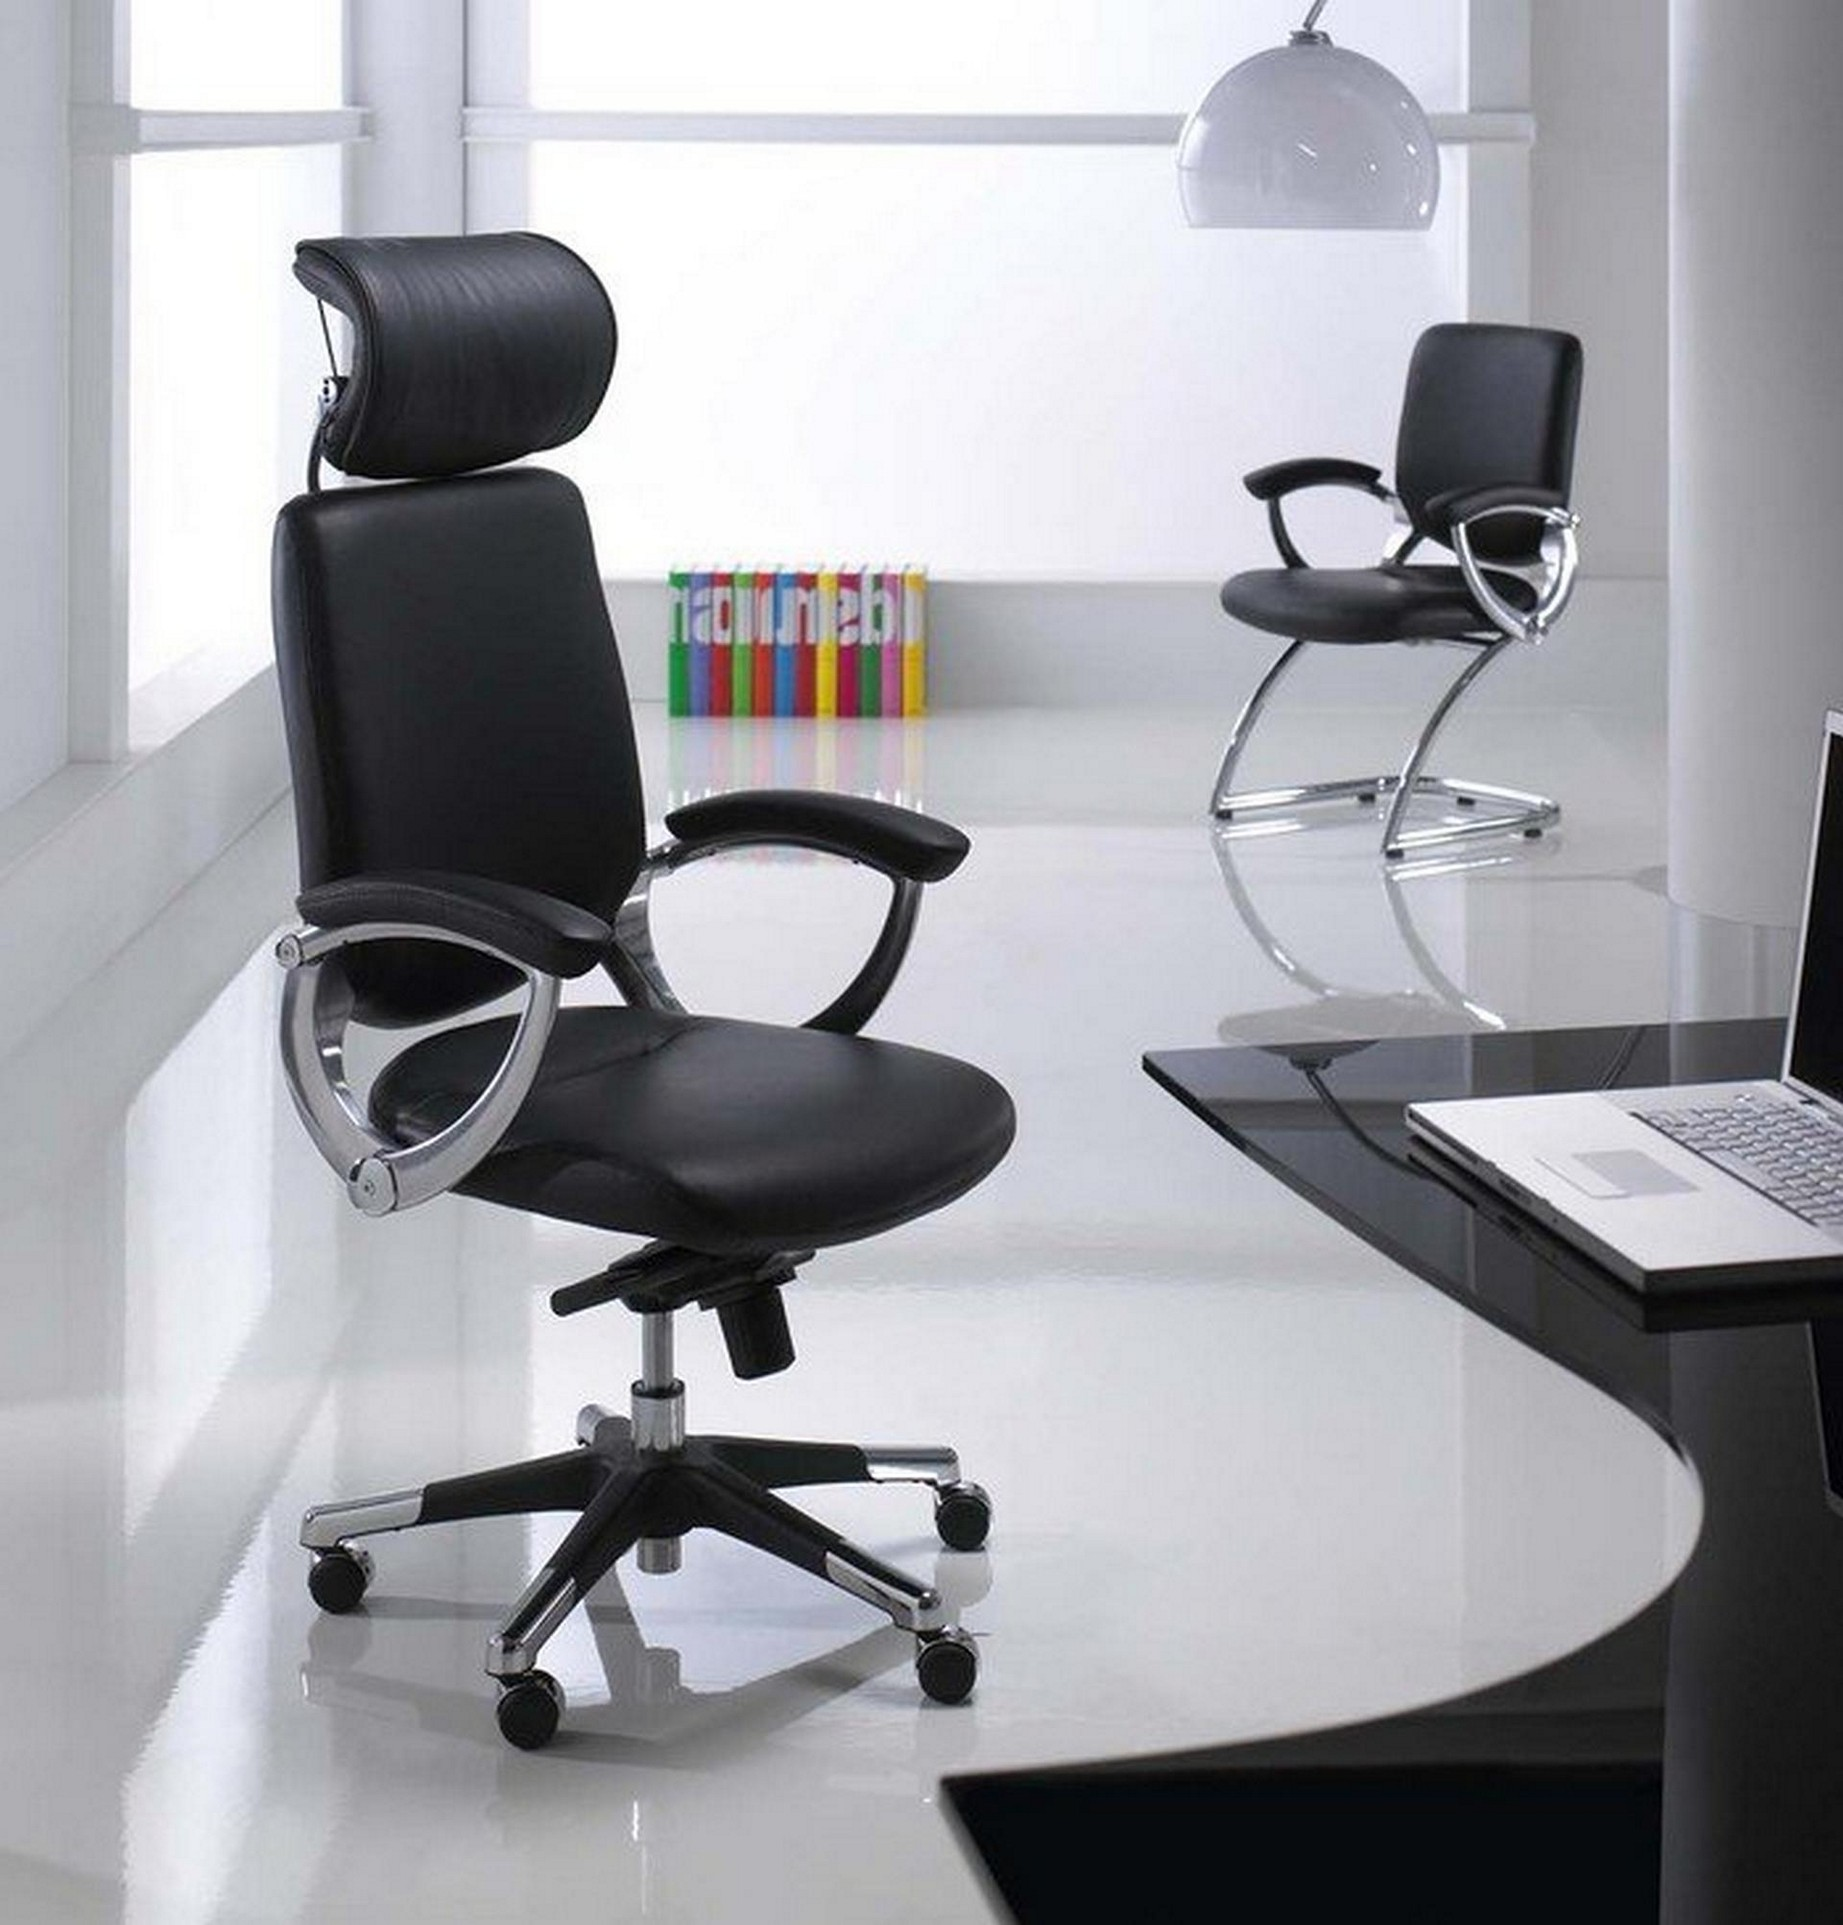 most comfortable at task posture computer chair stacking sale leather cheap best max seat boardroom mesh of desk chairs support back full size office good small sitting for furniture